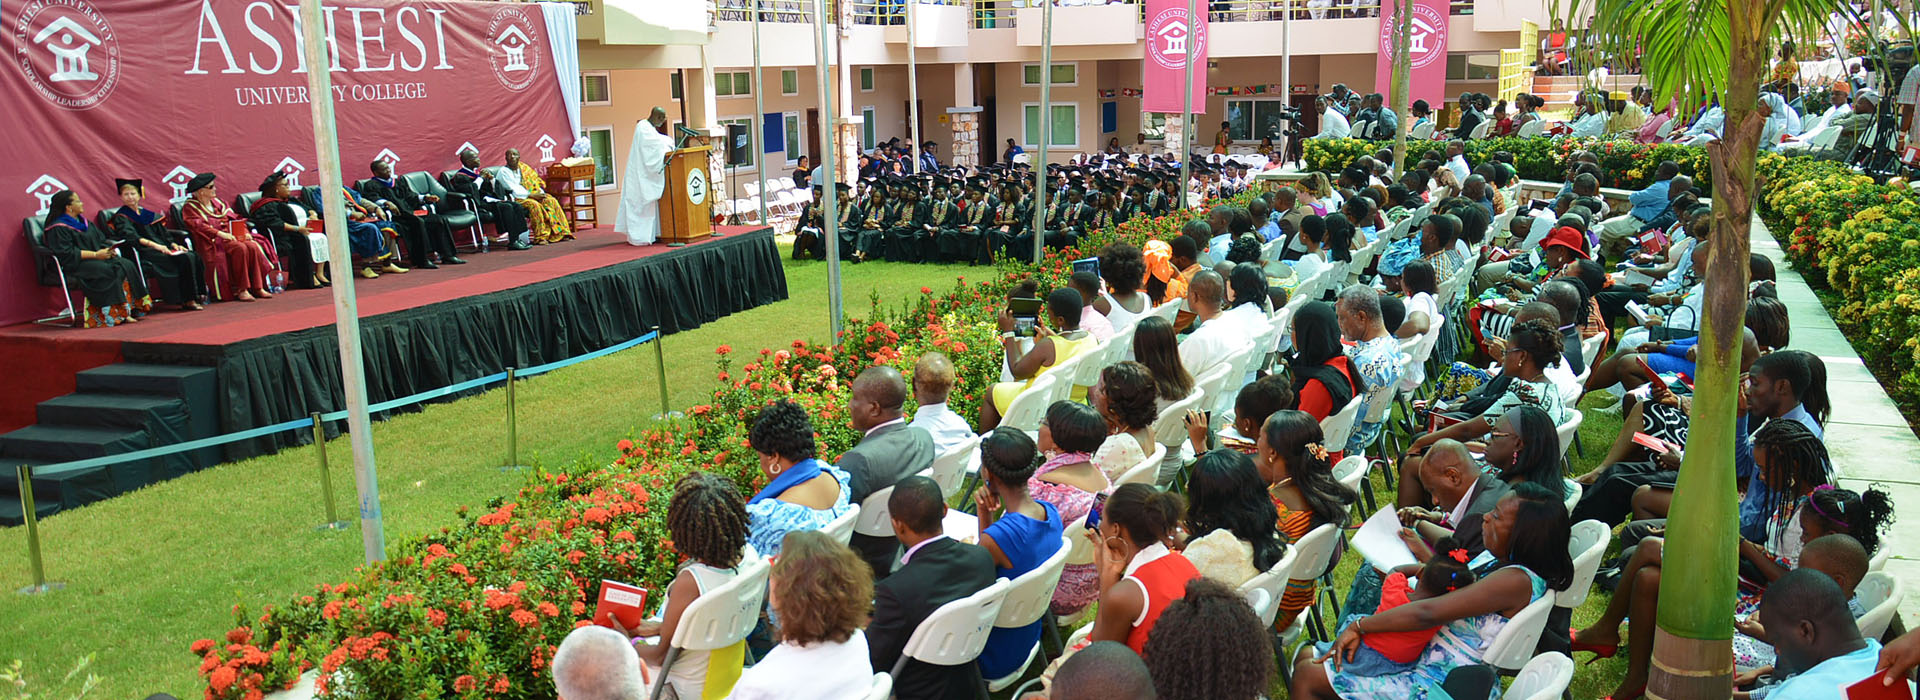 <p>It was the very first commencement ceremony on Ashesi's own campus</p>